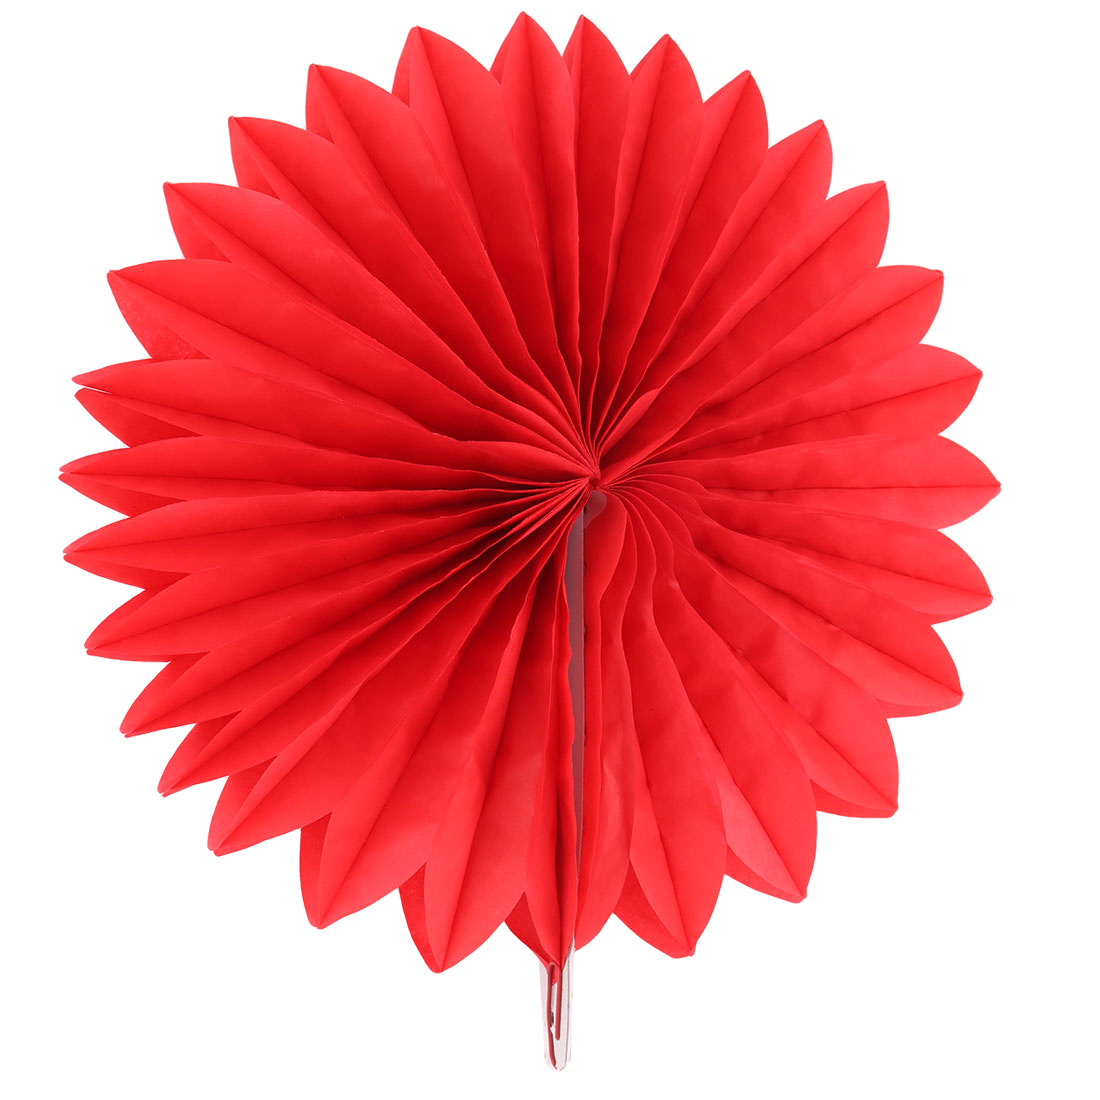 Paper Hollow Out Design Folding Fan Flower Red for Party Birthday Wedding Home Decor